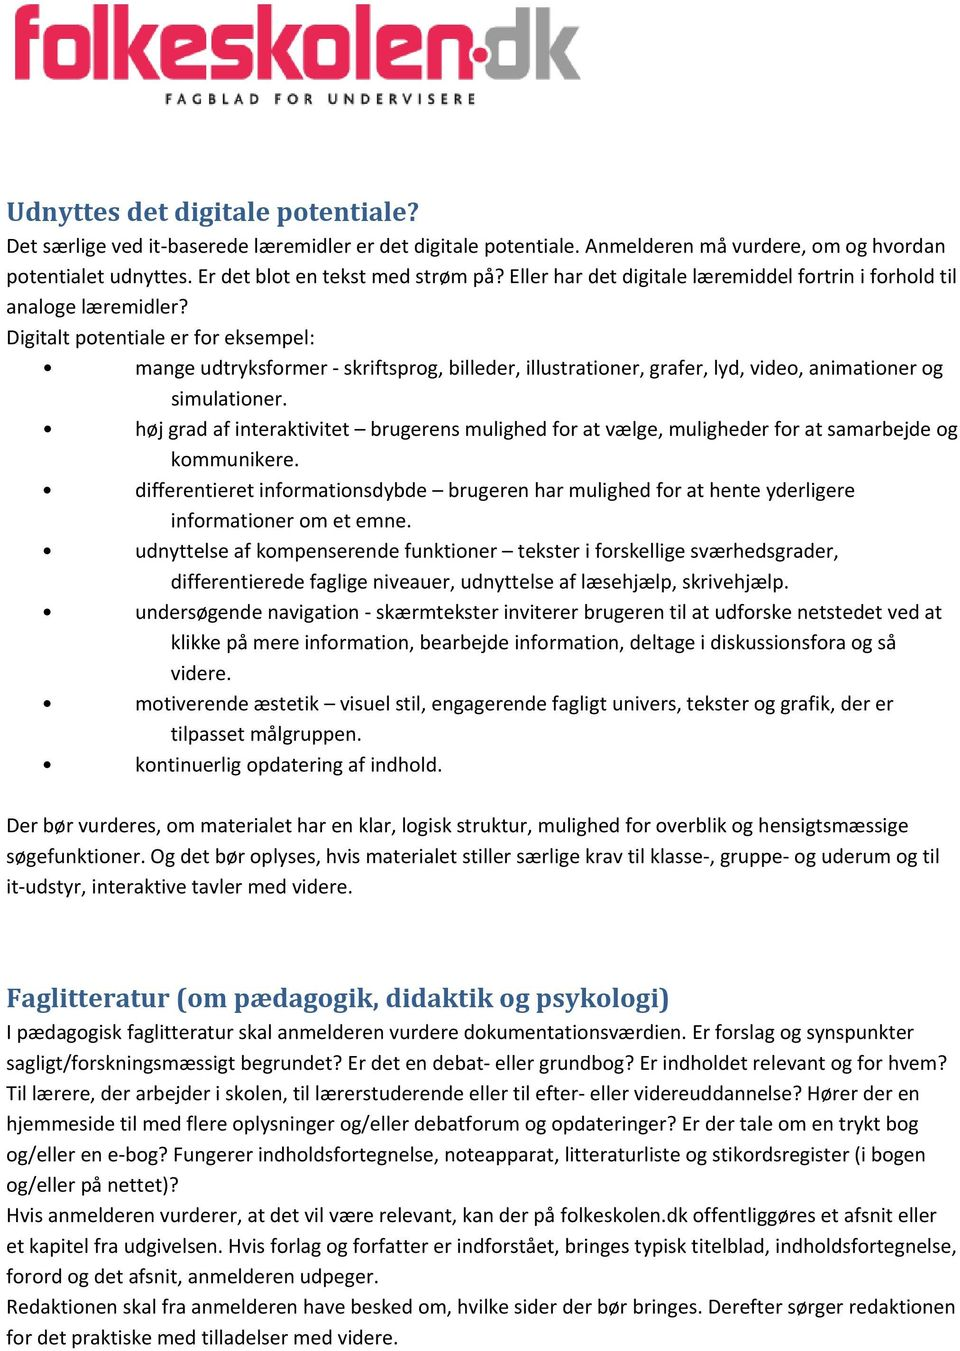 Digitalt potentiale er for eksempel: mange udtryksformer skriftsprog, billeder, illustrationer, grafer, lyd, video, animationer og simulationer.